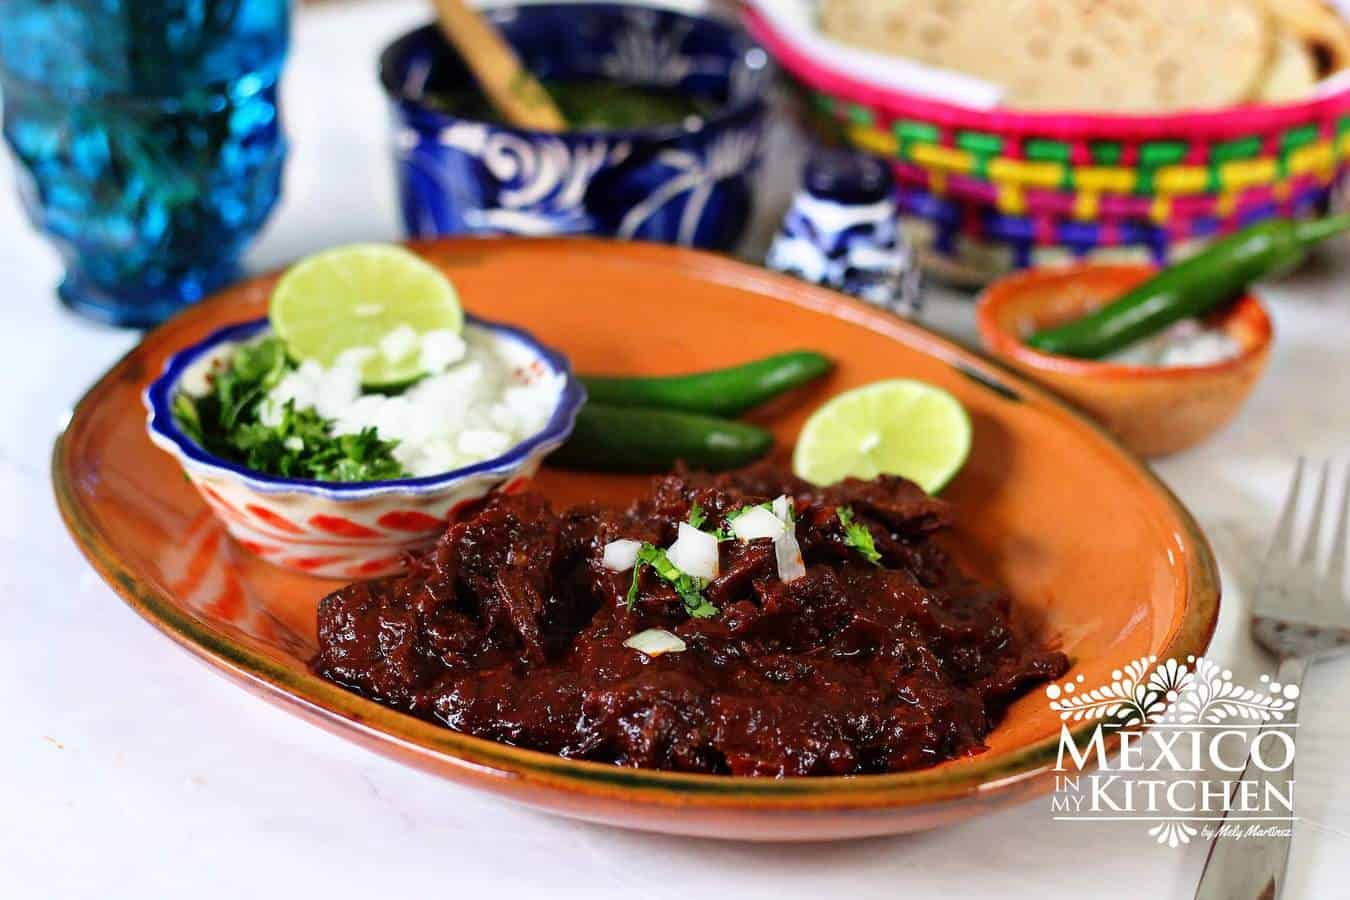 Red beef barbacoa recipe | Authentic Mexican Recipes